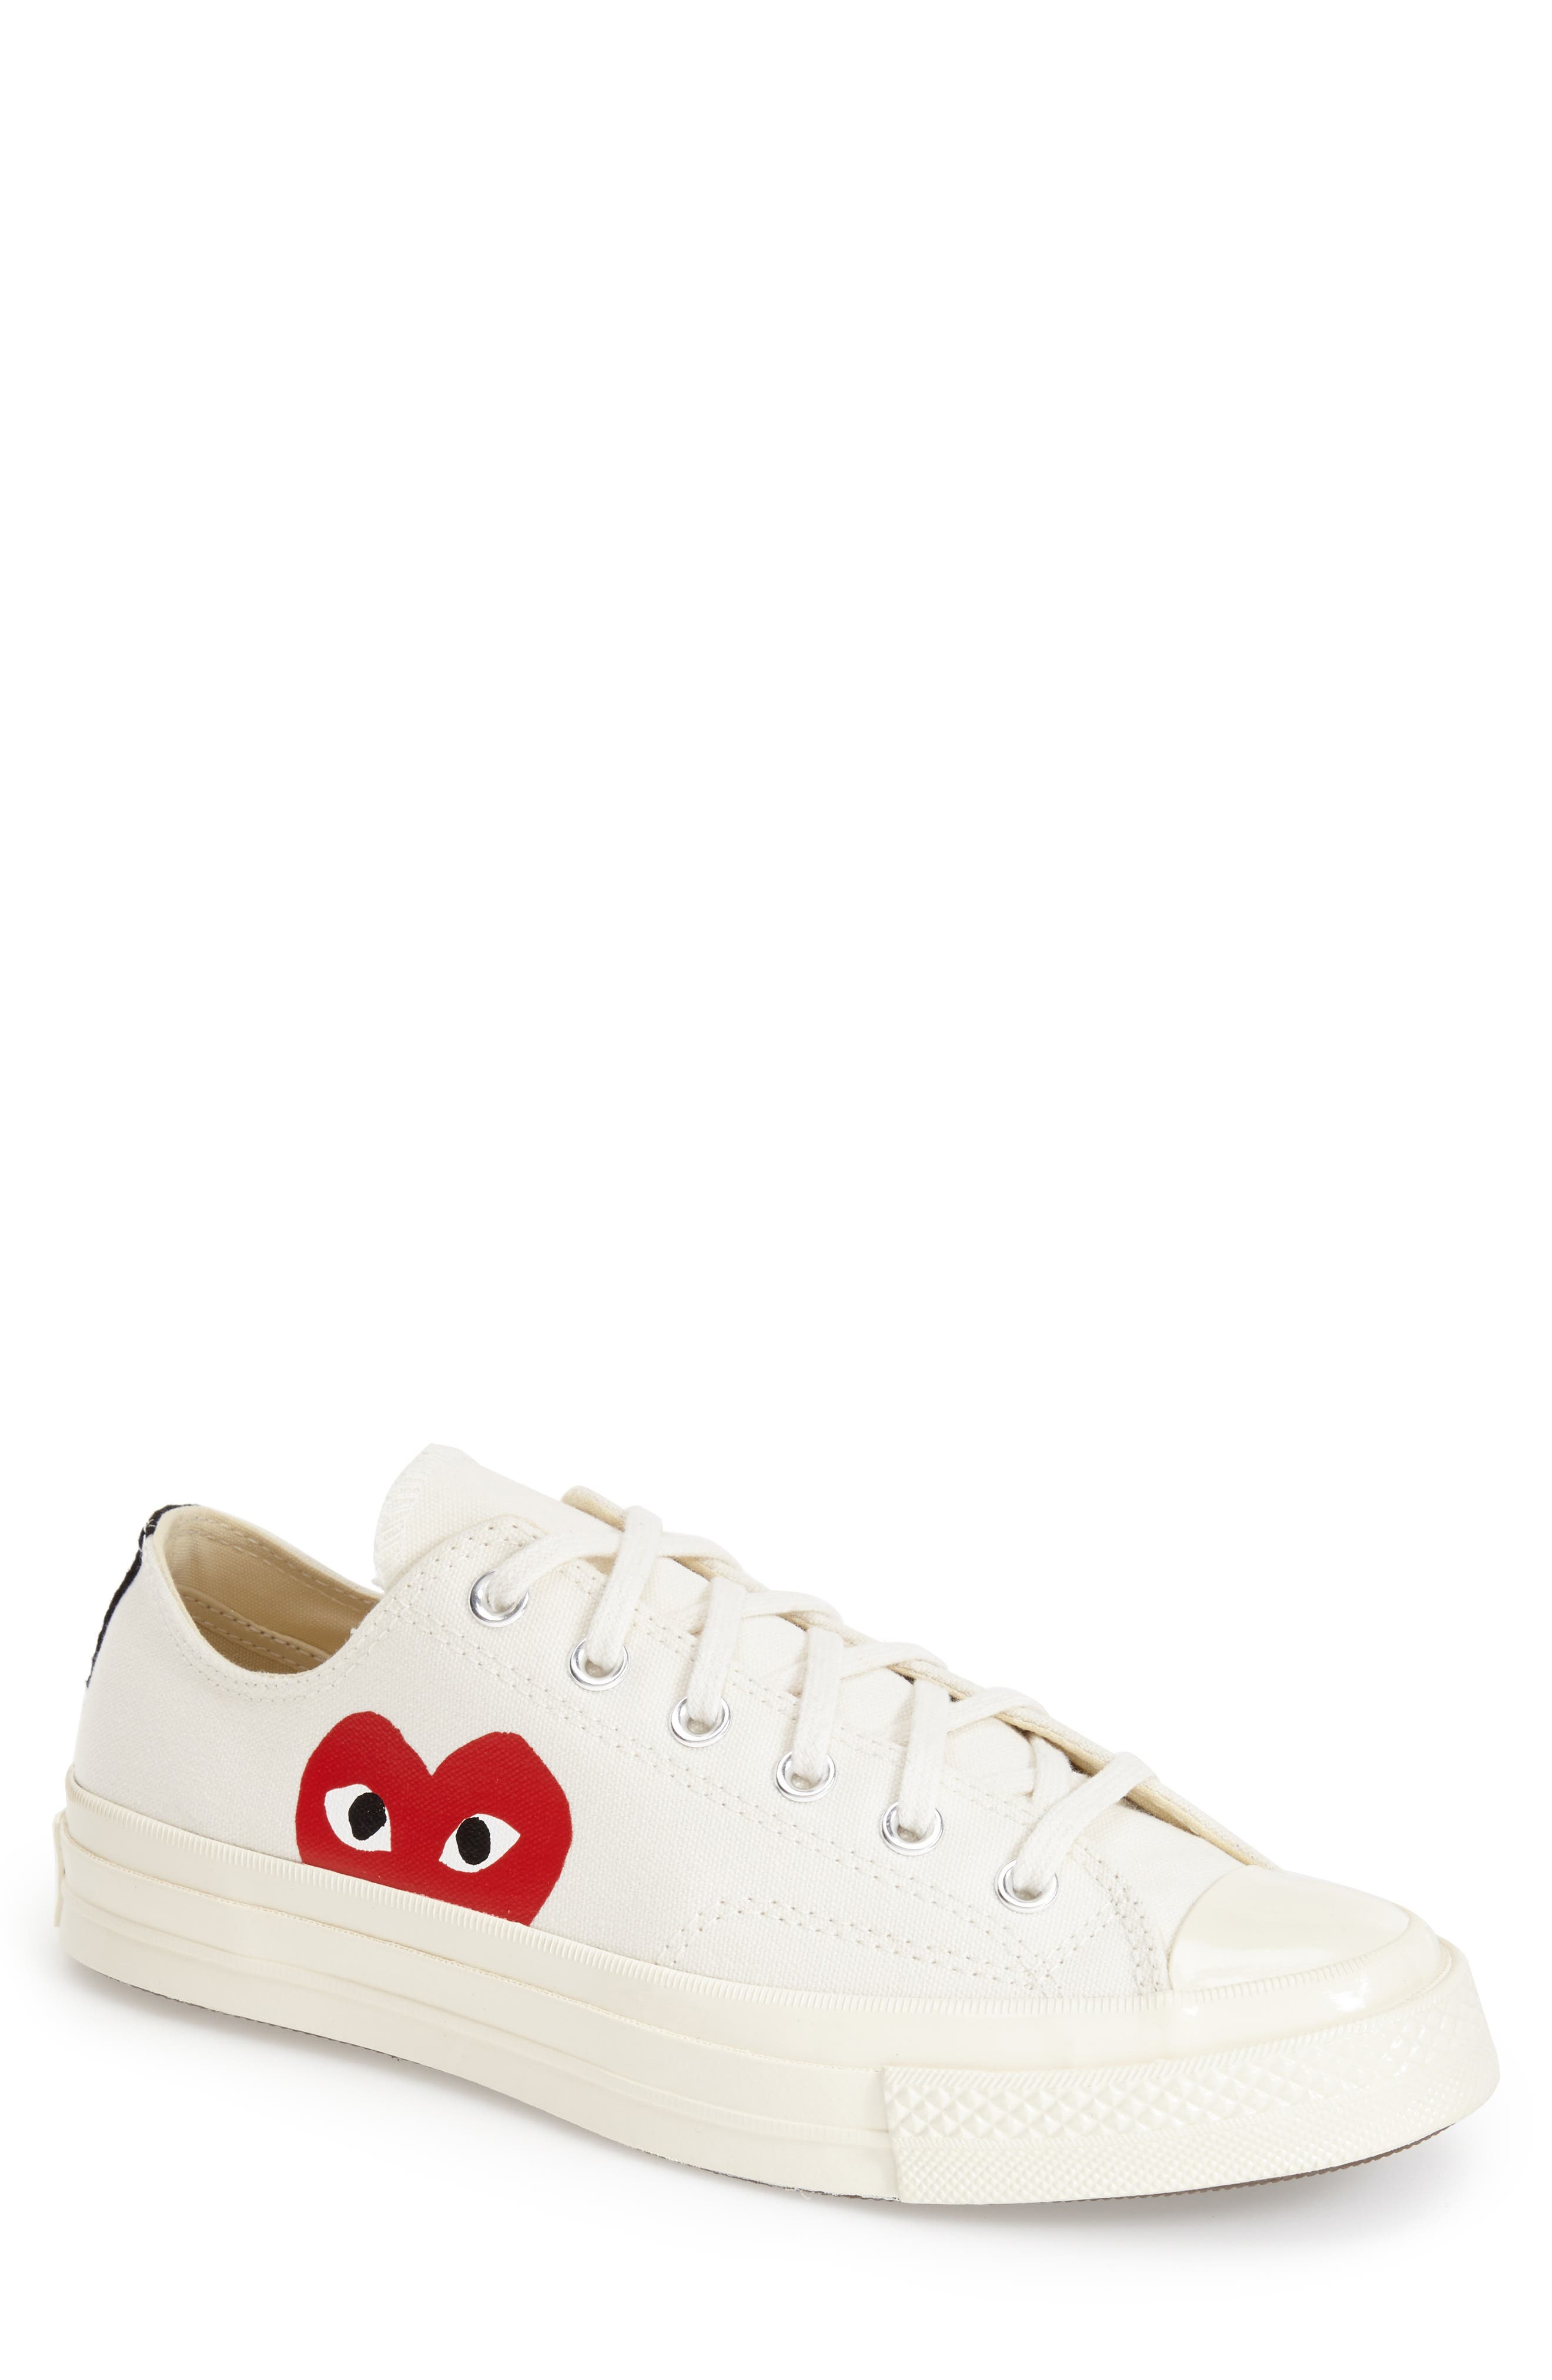 Comme des Garçons PLAY x Converse Chuck Taylor® Hidden Heart Low Top Sneaker (Women)